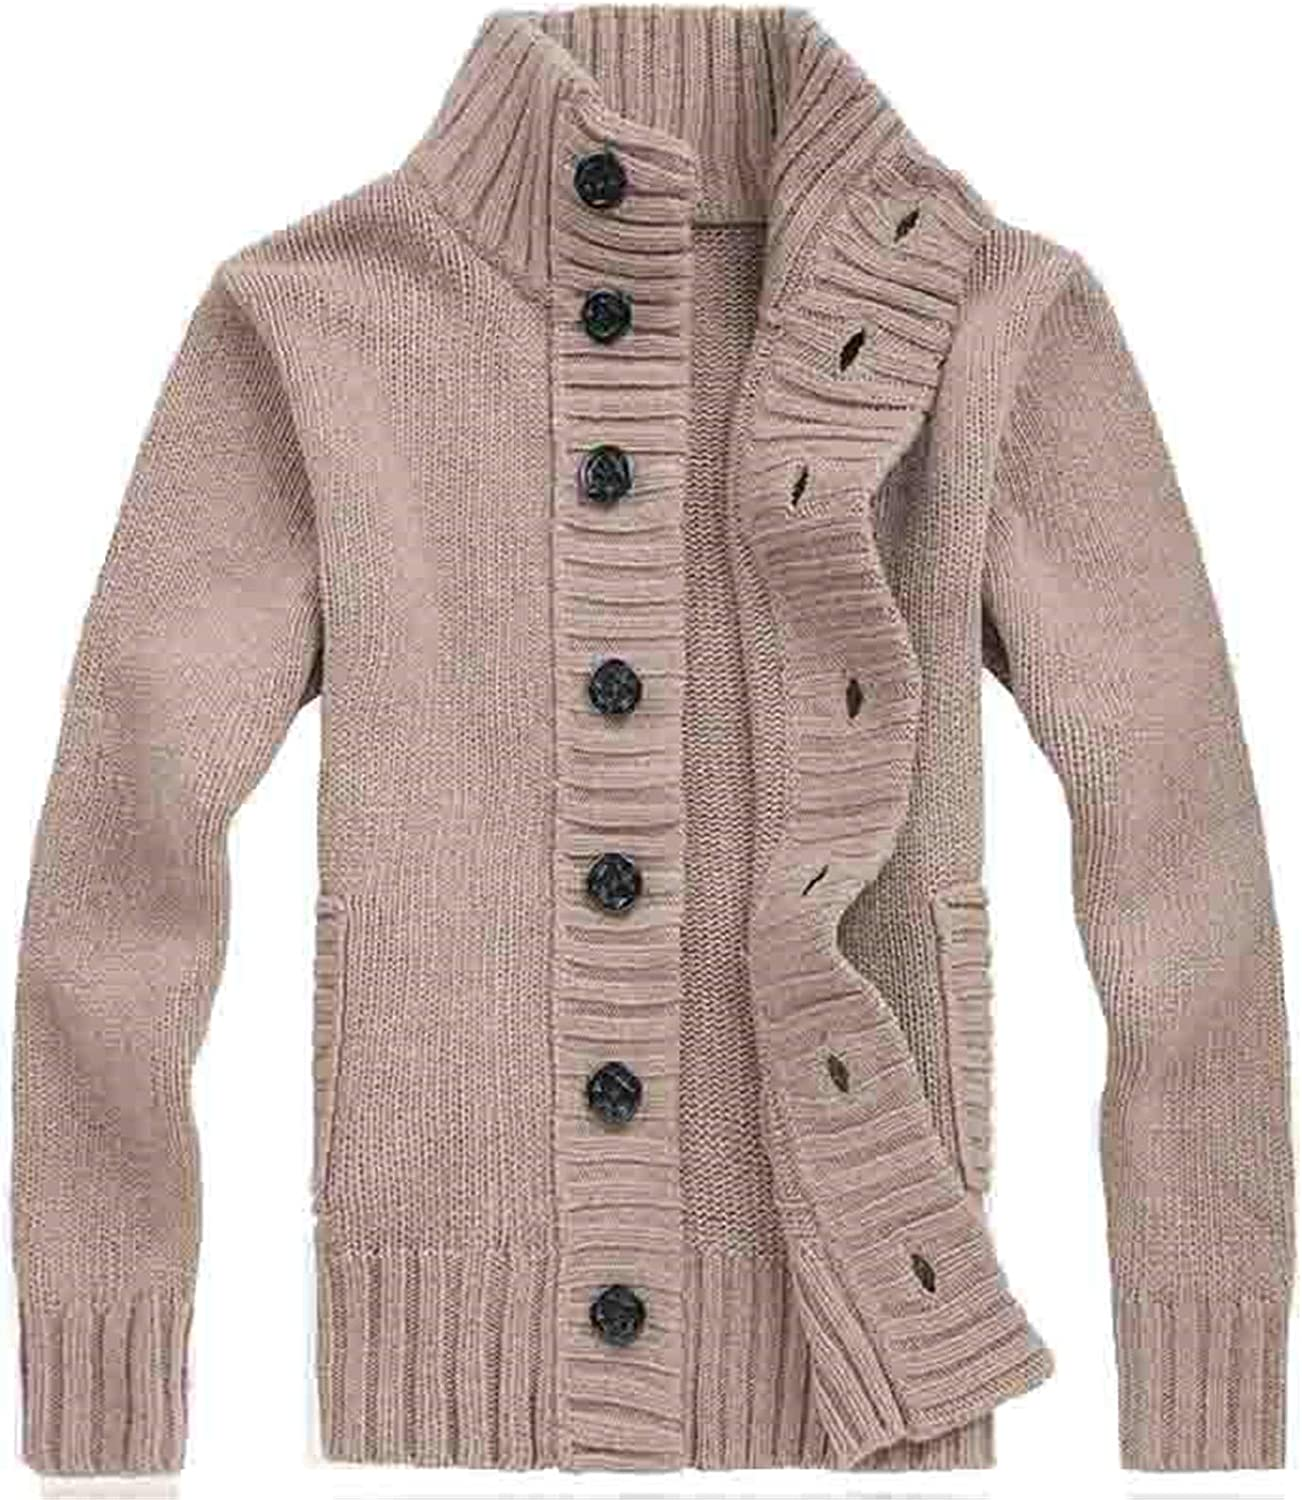 Men Sweater Cardigan Slim Solid Color Thickening Knitted Sweater Warm Korean Sweatercoat Knitwear